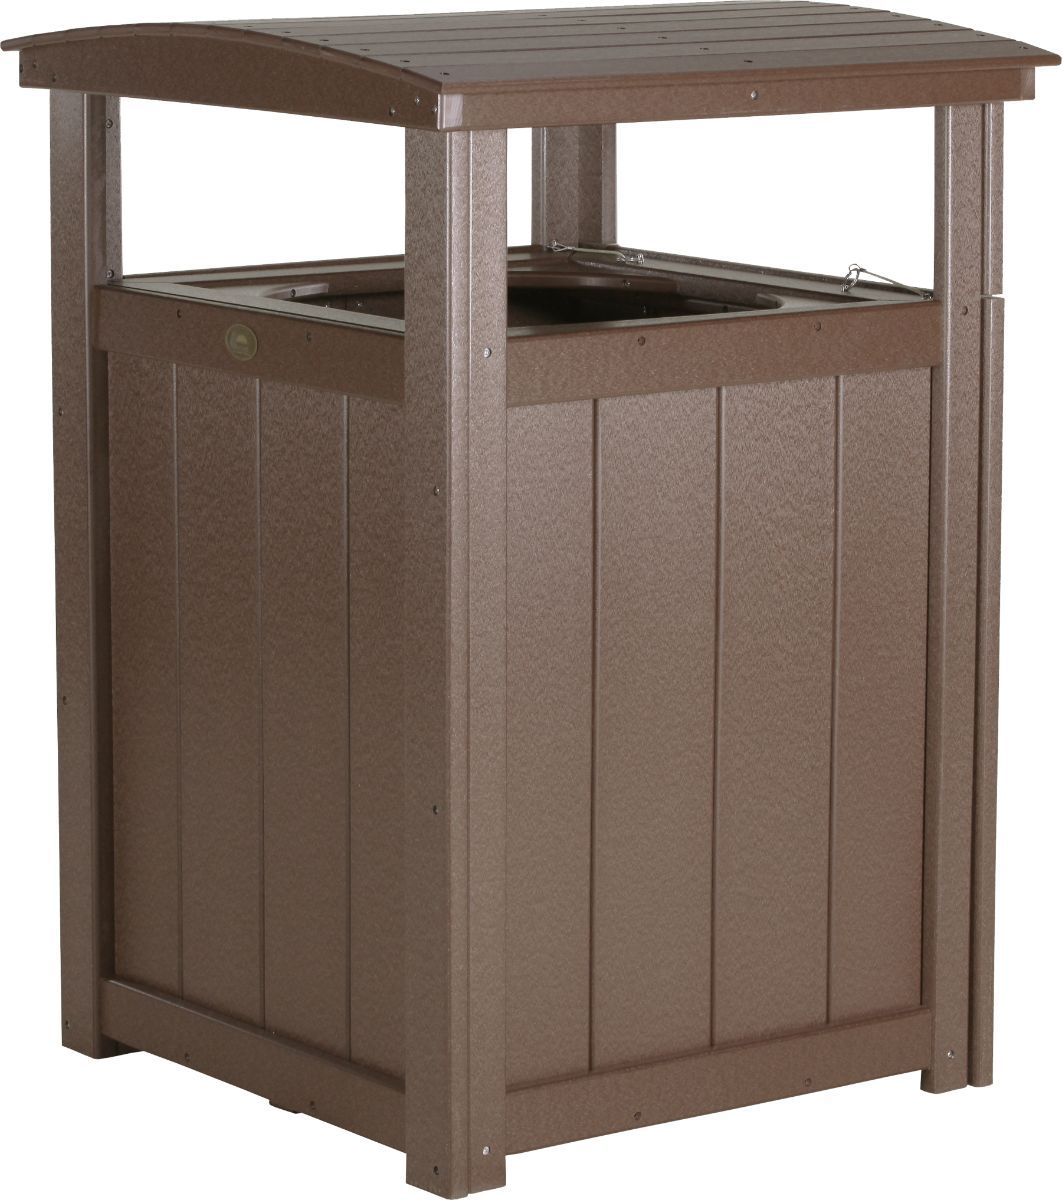 Chestnut Brown Pigeon Point Commercial Outdoor Trashcan